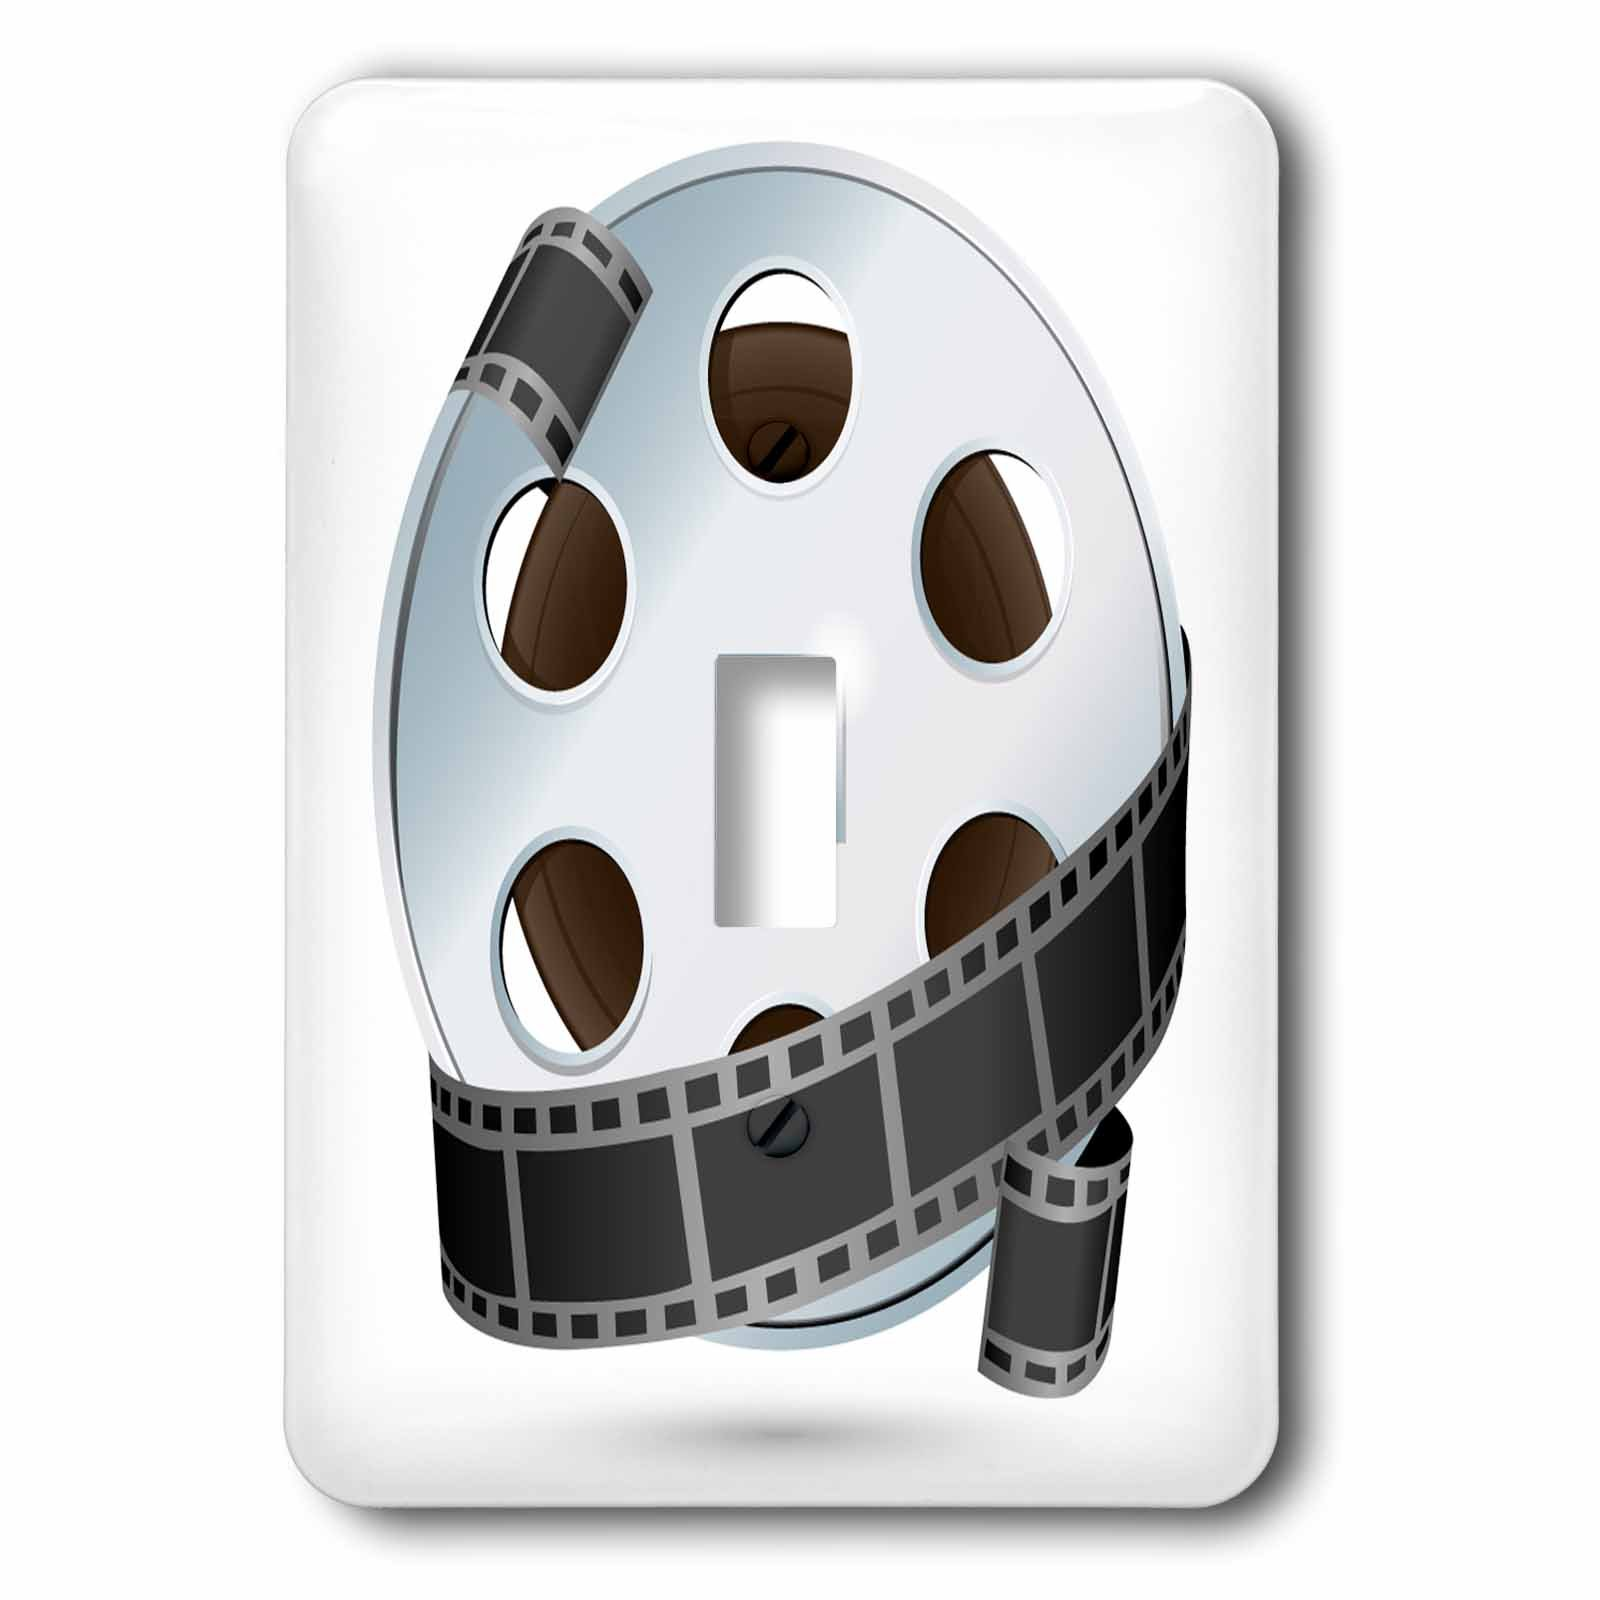 3dRose lsp_159179_1 A Silver and Black Movie Reel Single Toggle Switch